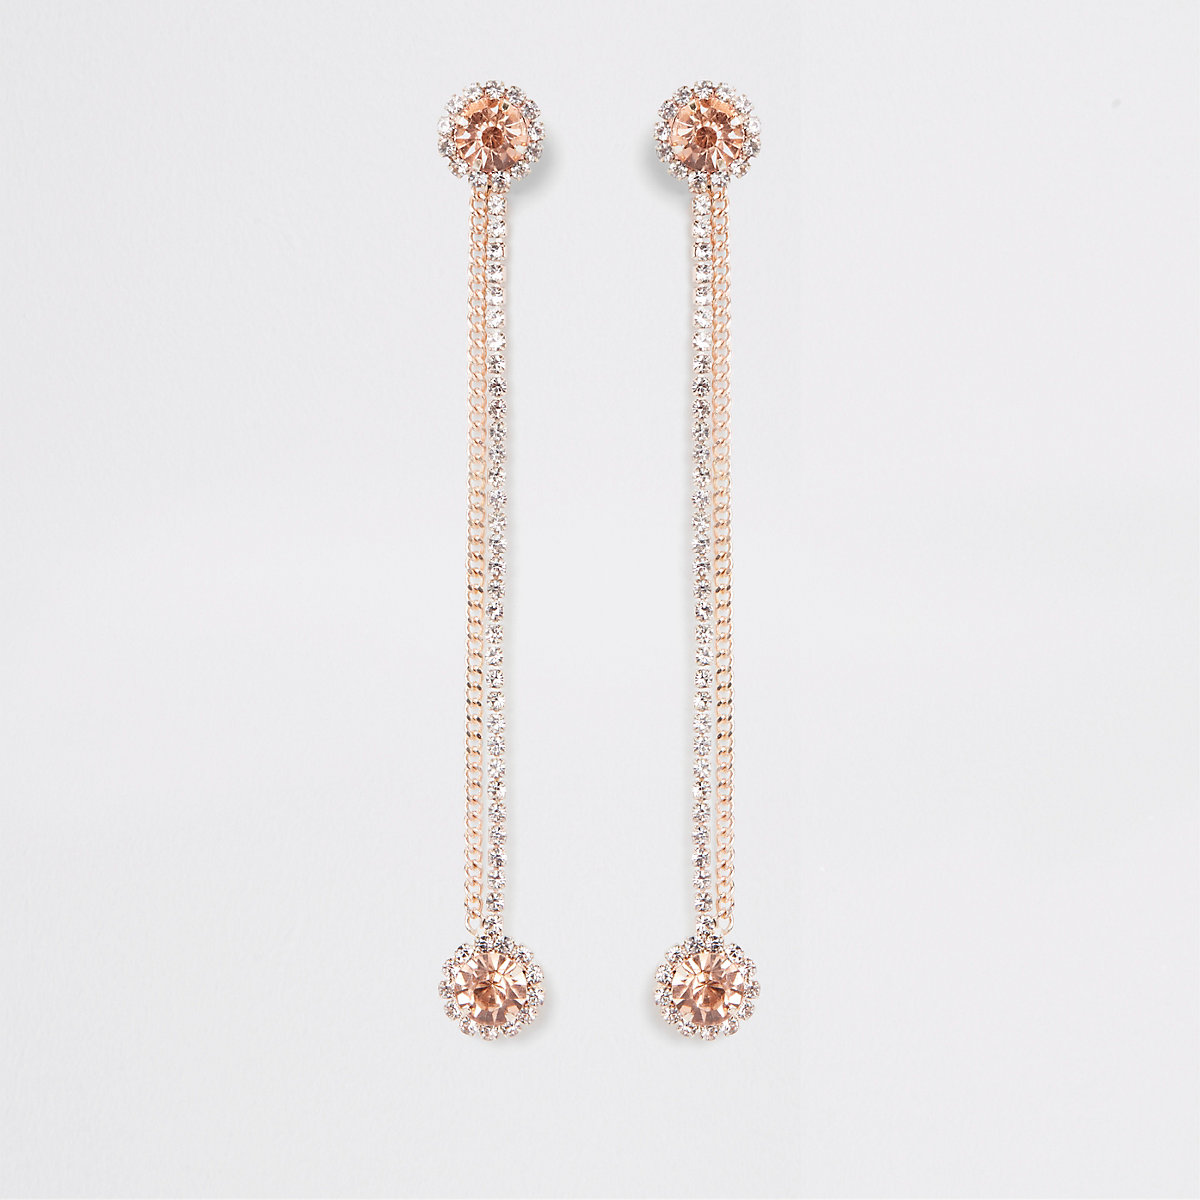 Rose gold tone front and back drop earrings